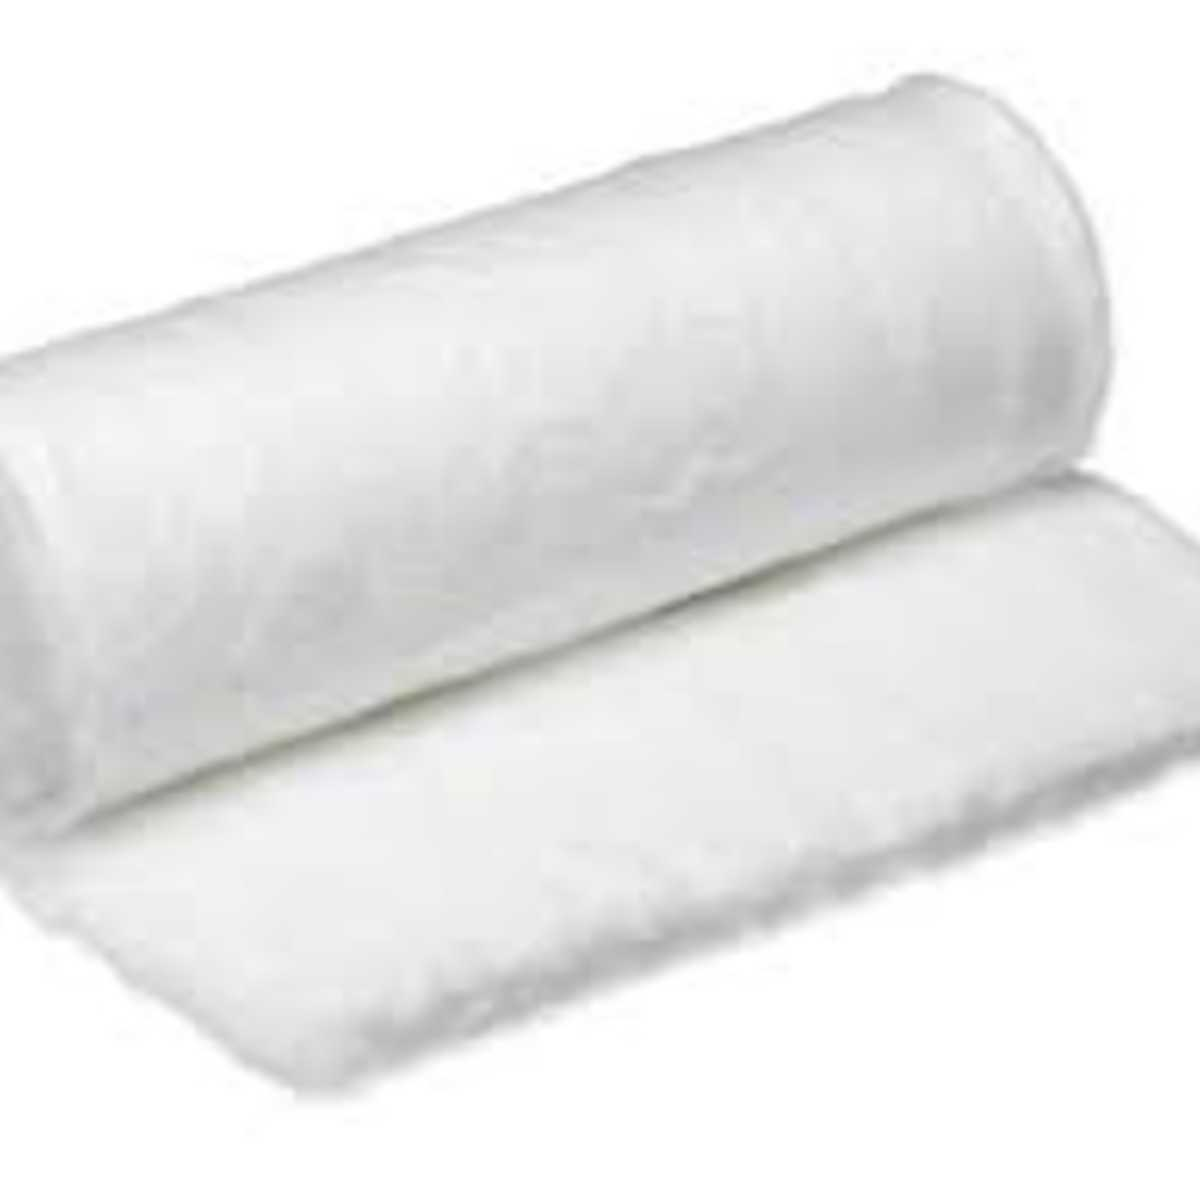 Cotton Roll, 100g